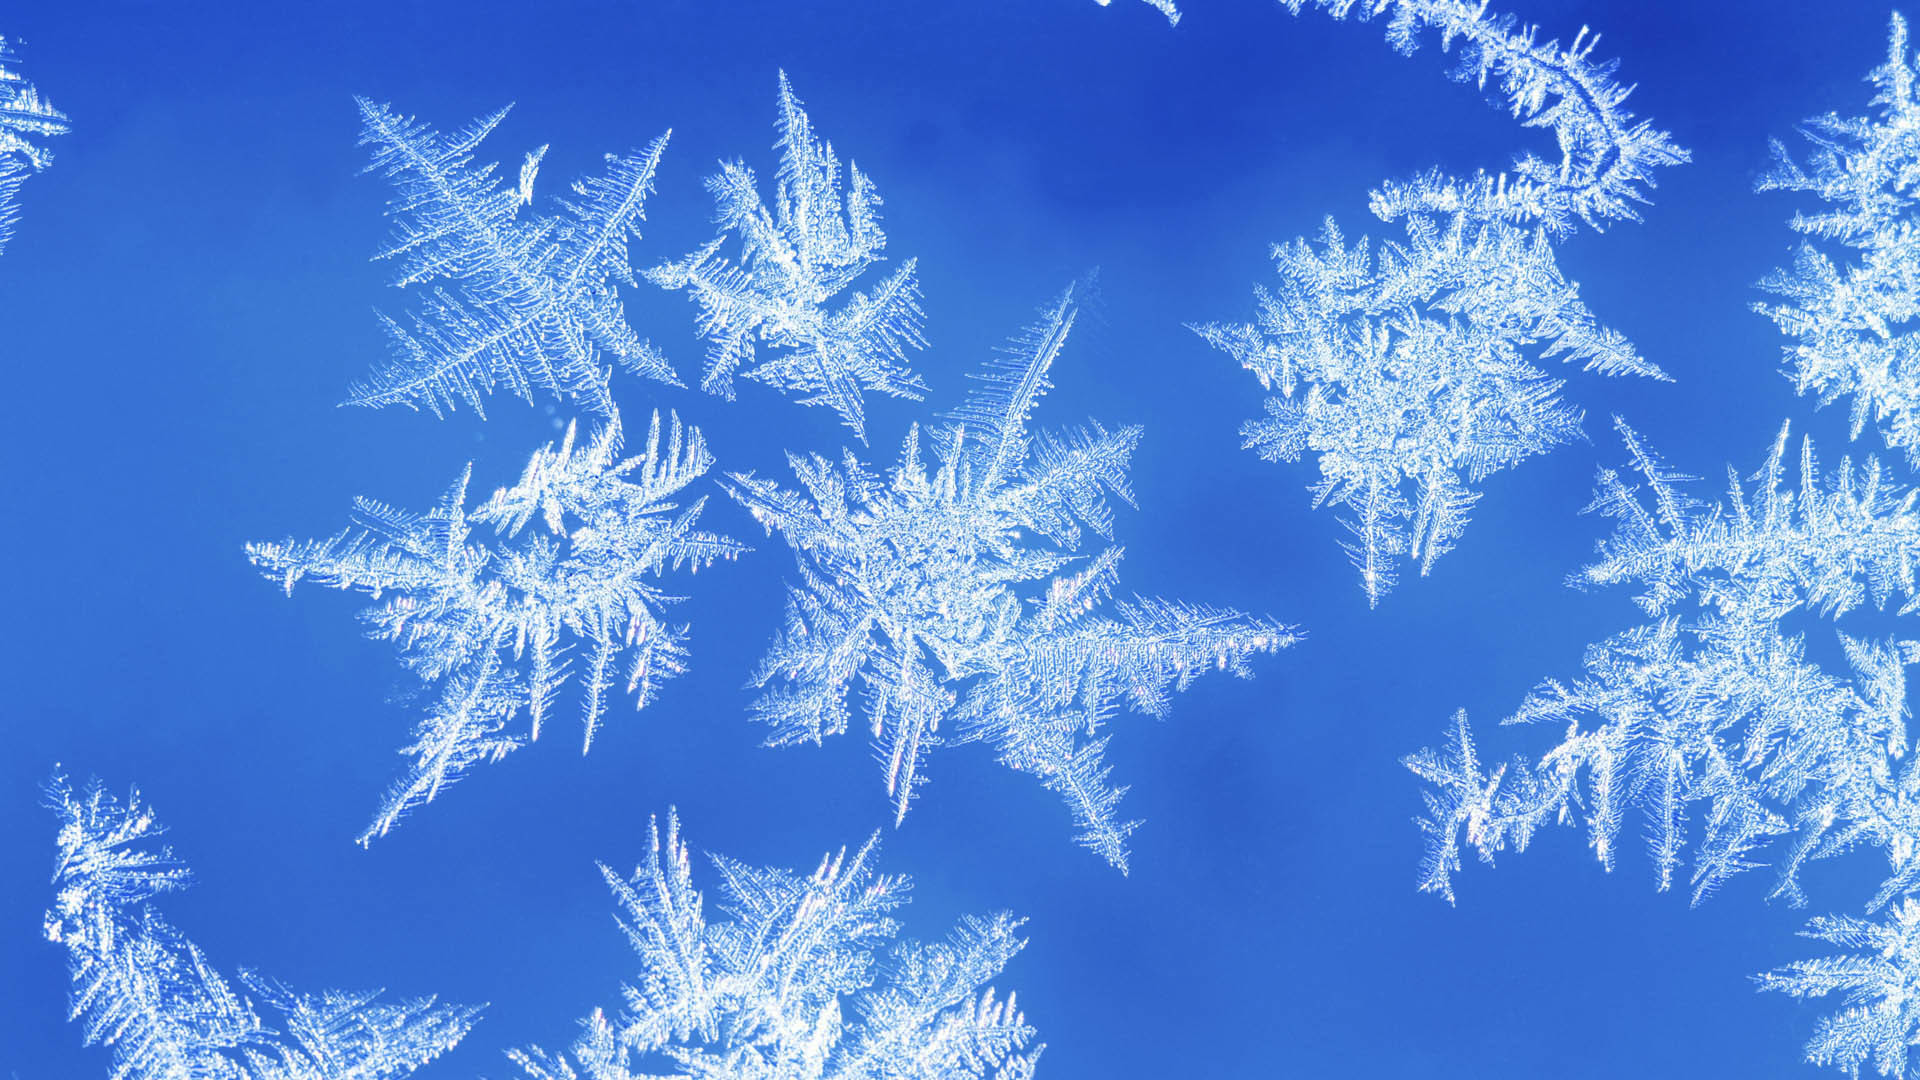 Res: 1920x1080, Image: Snowflake Photo wallpapers and stock photos. Â«